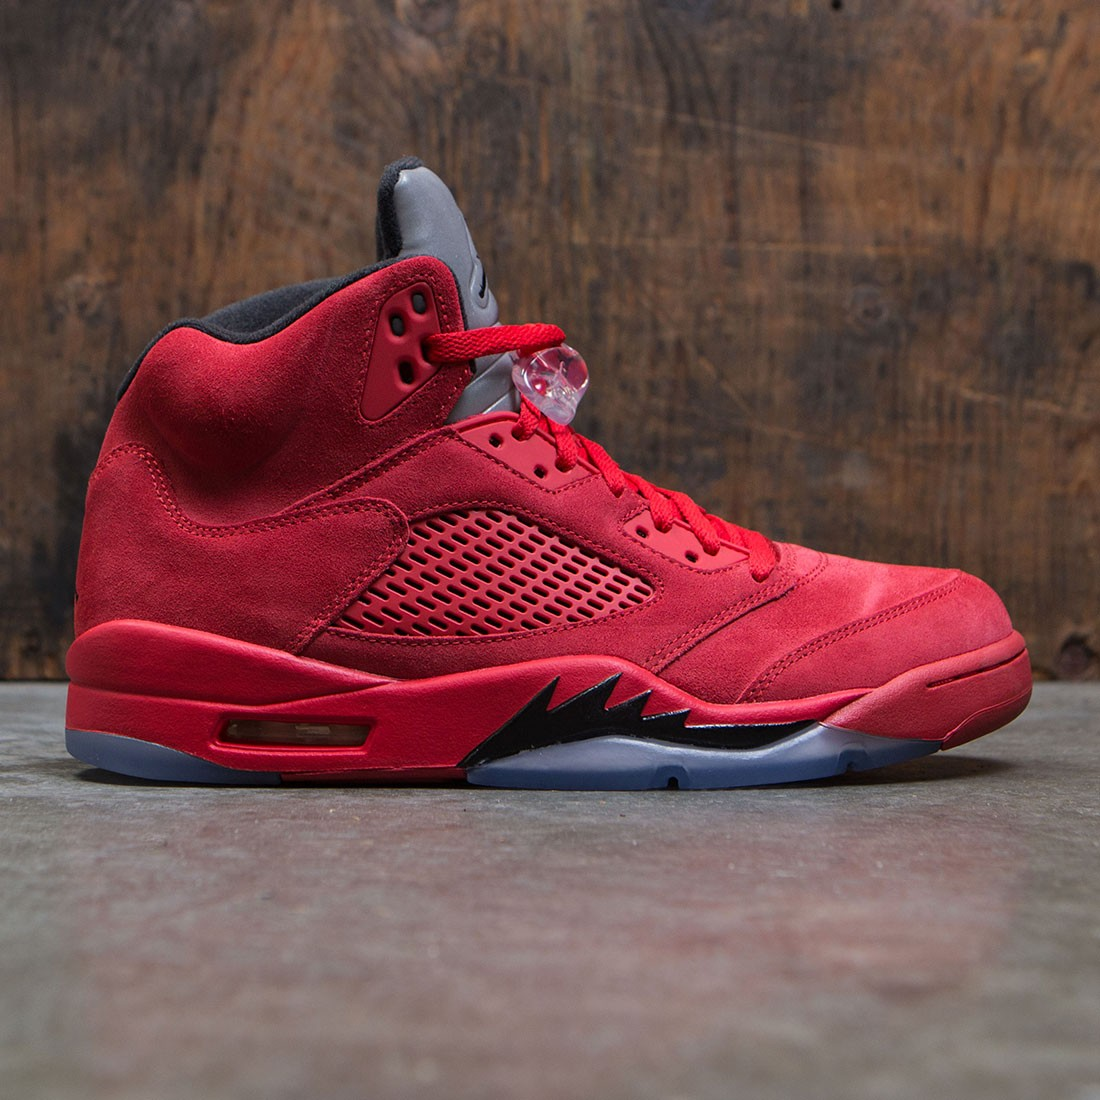 low priced 1610f 57e7a jordan men air jordan 5 retro university red black